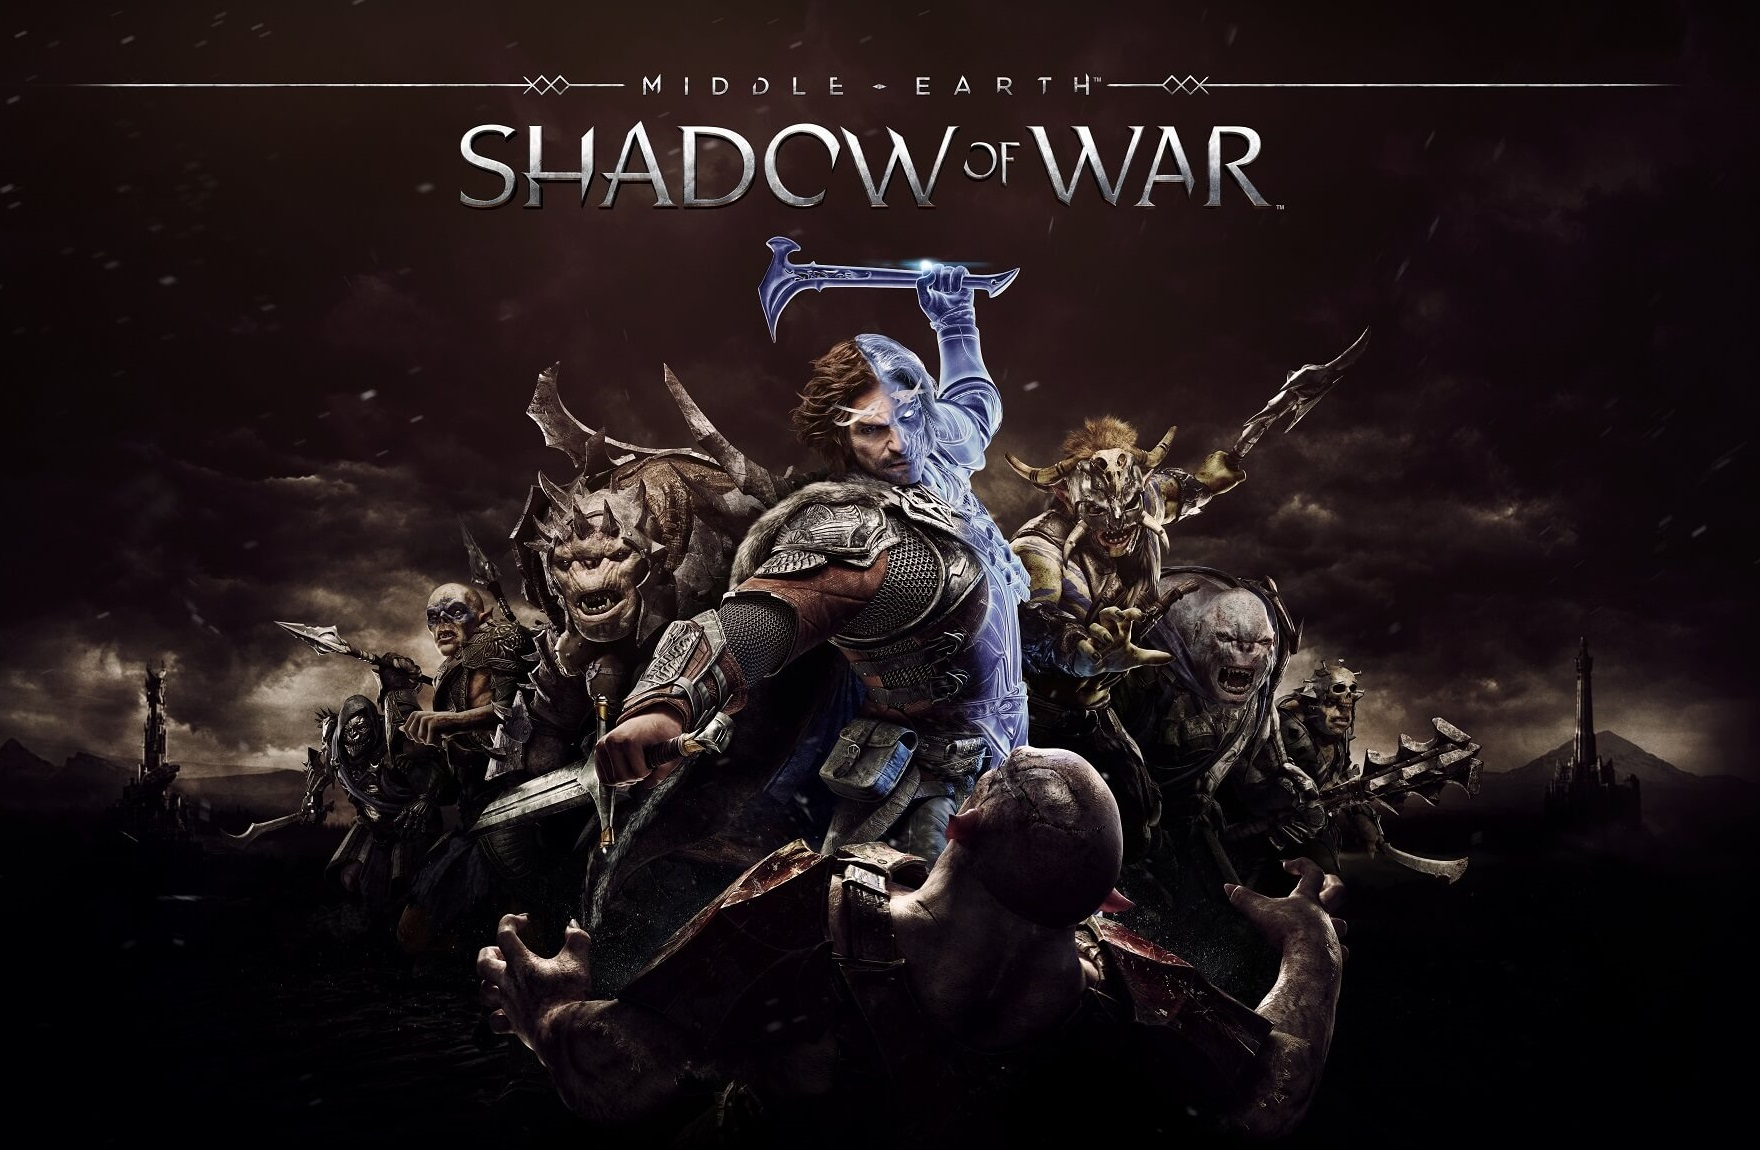 shadow of war cover 1.jpg